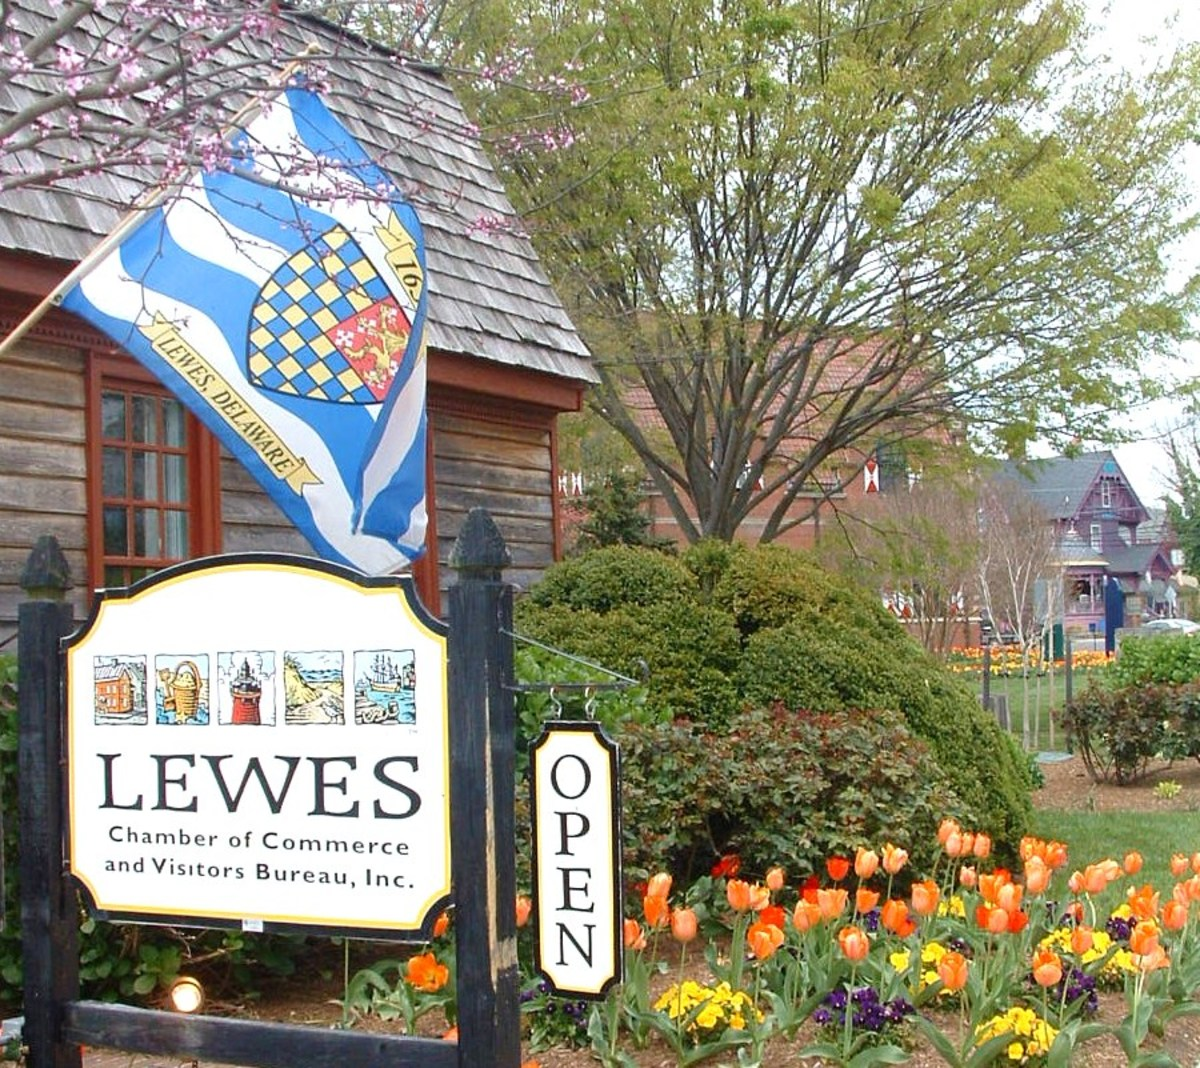 For info about all springtime events in Lewes, contact the Lewes Chamber of Commerce at 302-645-8073.